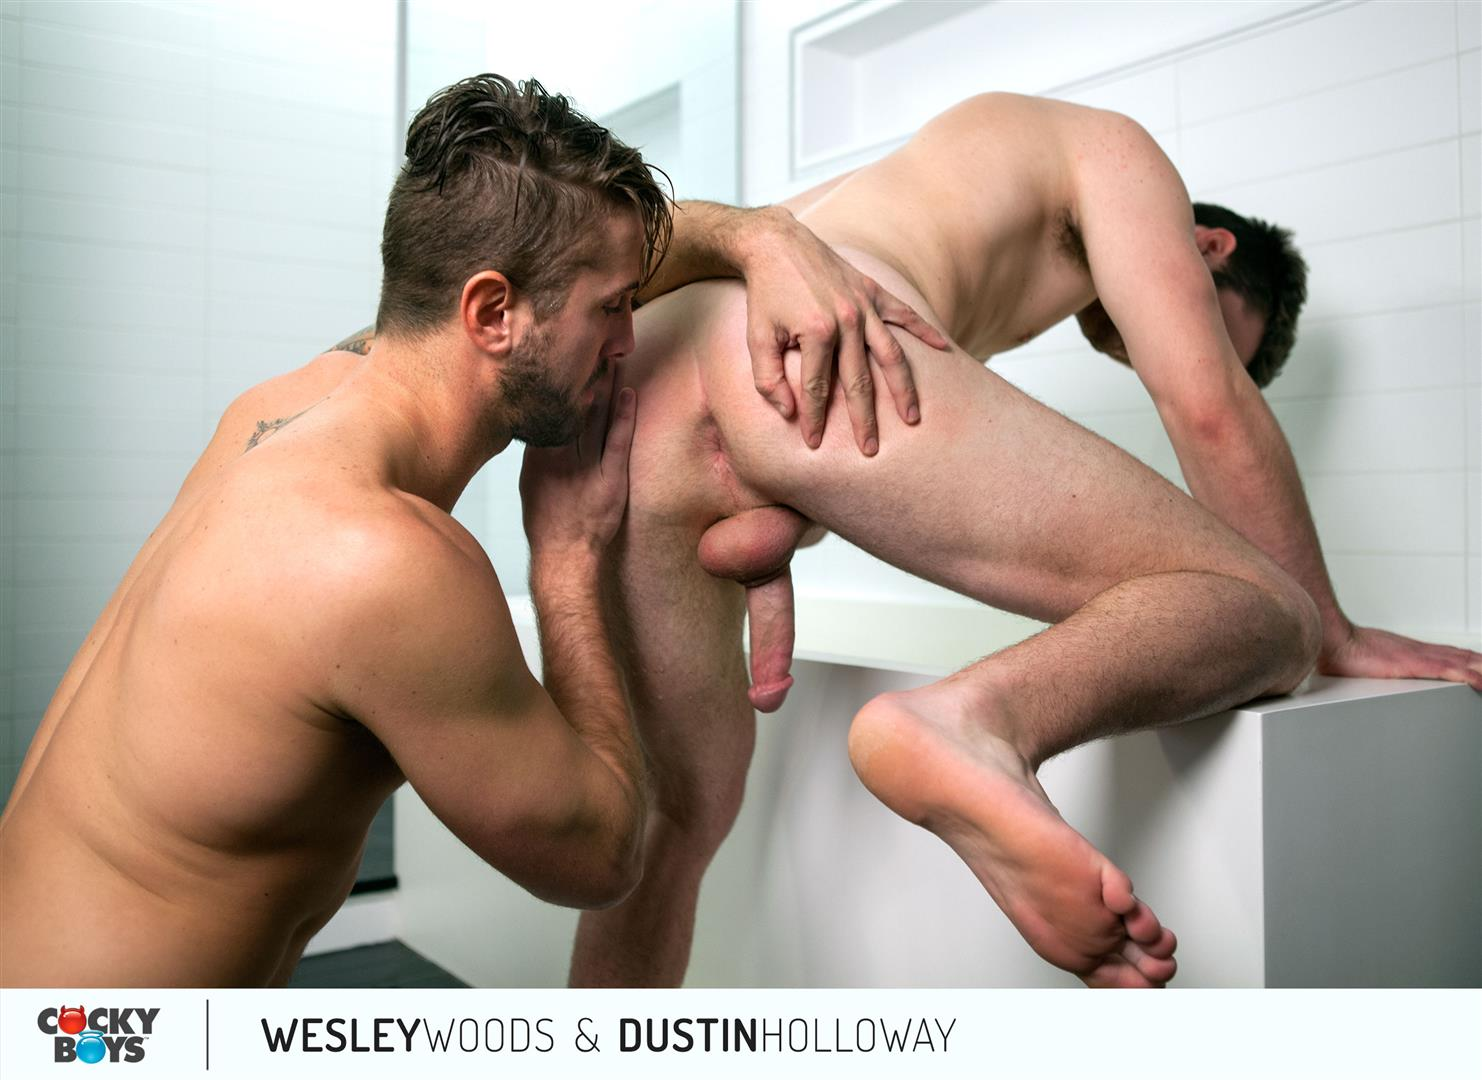 Cockyboys-Wesley-Woods-and-Dustin-Holloway-Hung-Hunks-Flip-Fucking-Amateur-Gay-Porn-14 Cockyboys:  Wesley Woods and Dustin Holloway Flip-Flop Fucking